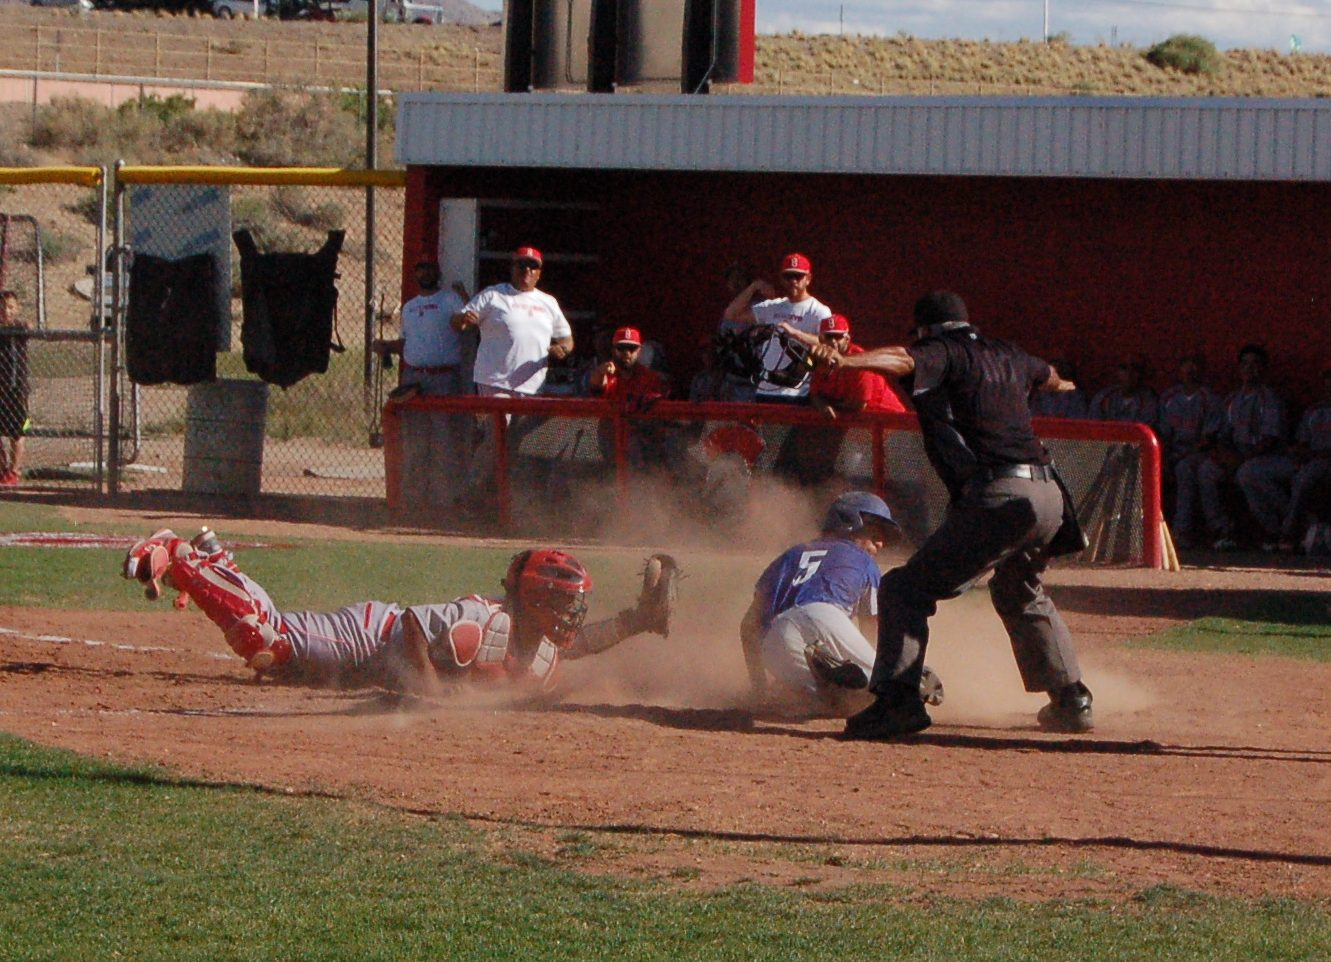 East Mountain bested by Bernalillo in first round of state